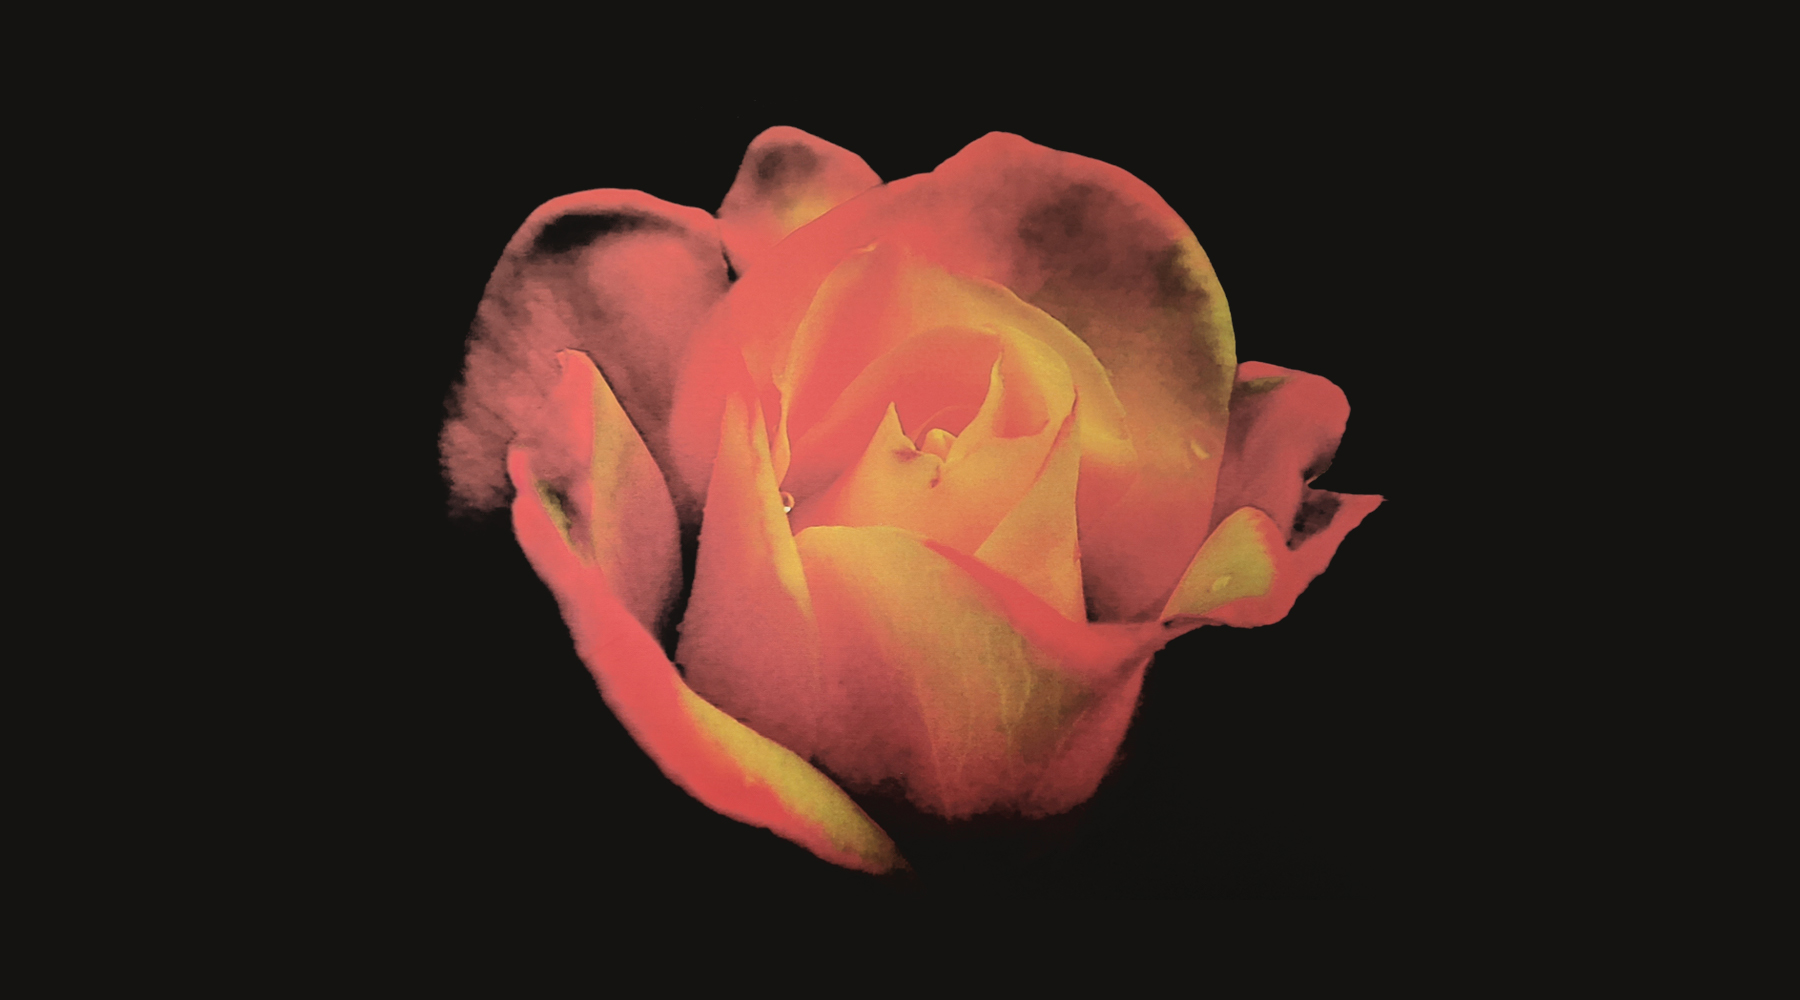 Rose by Herb Kuhl